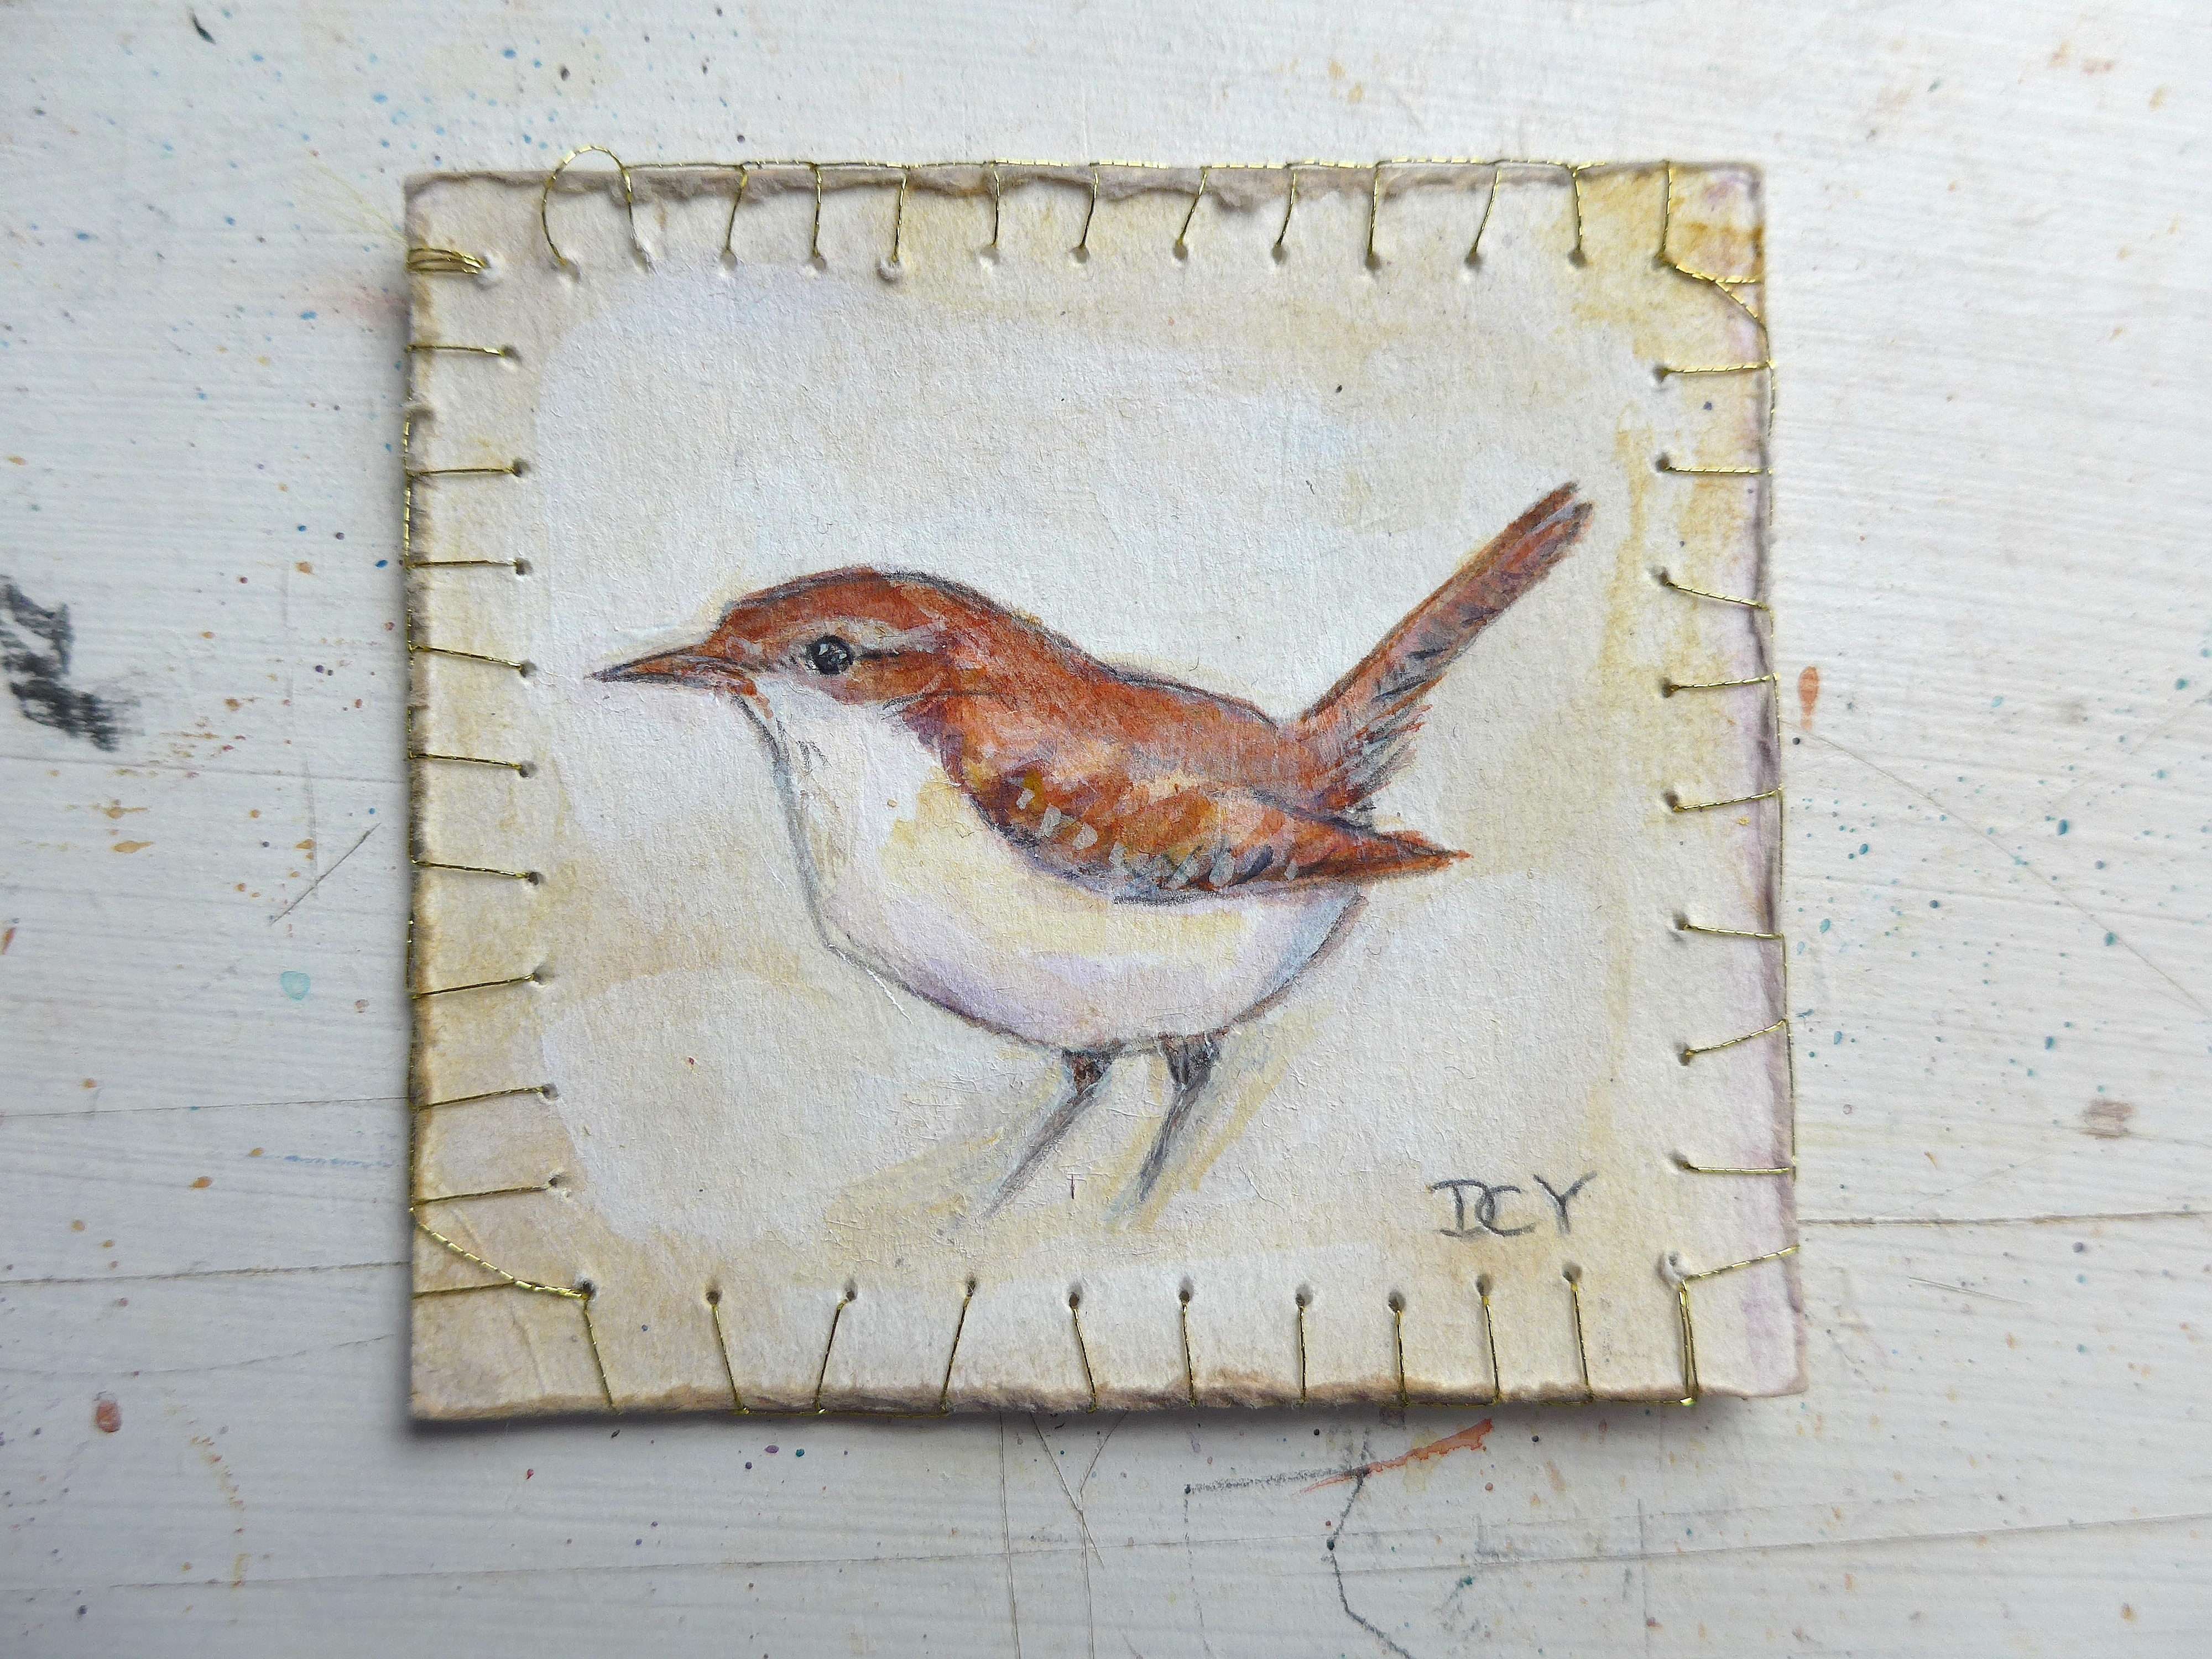 Painting showing painting of a wren on paper with gold thread decorating the edge by artist Diane Young